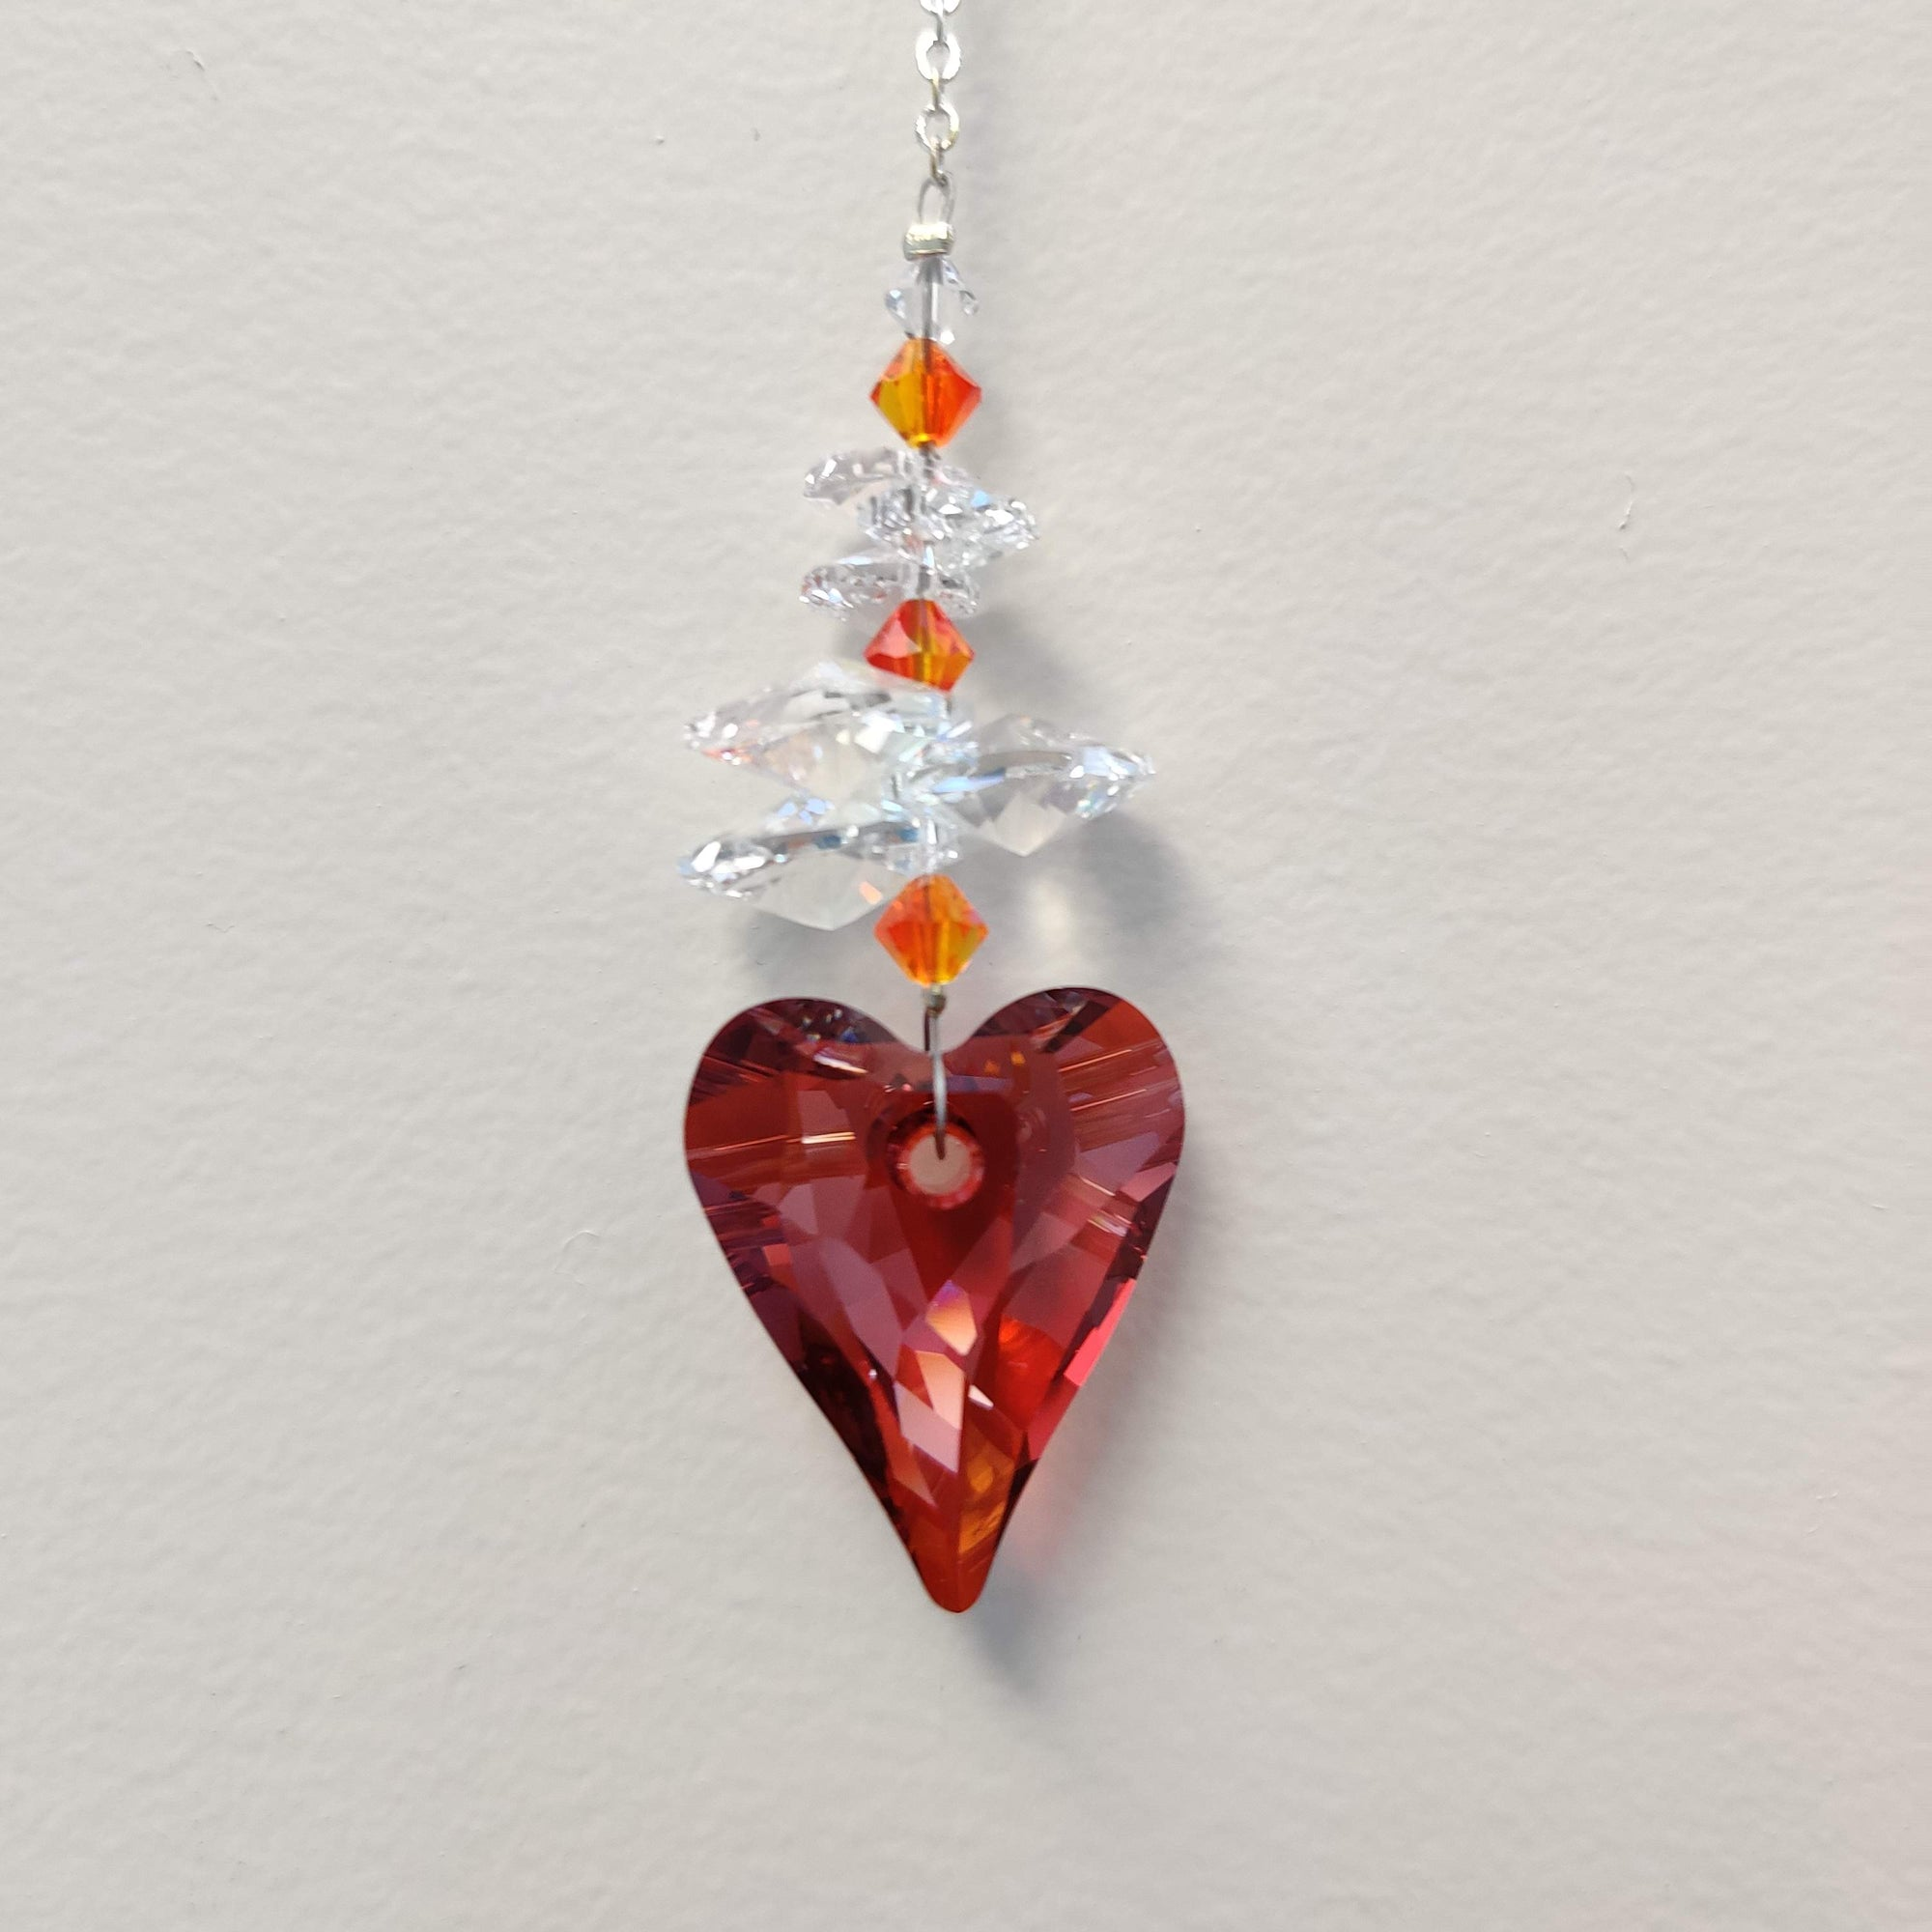 Clarus Ice Swarovski Crystal - Red Magma Wild Heart - Rivendell Shop